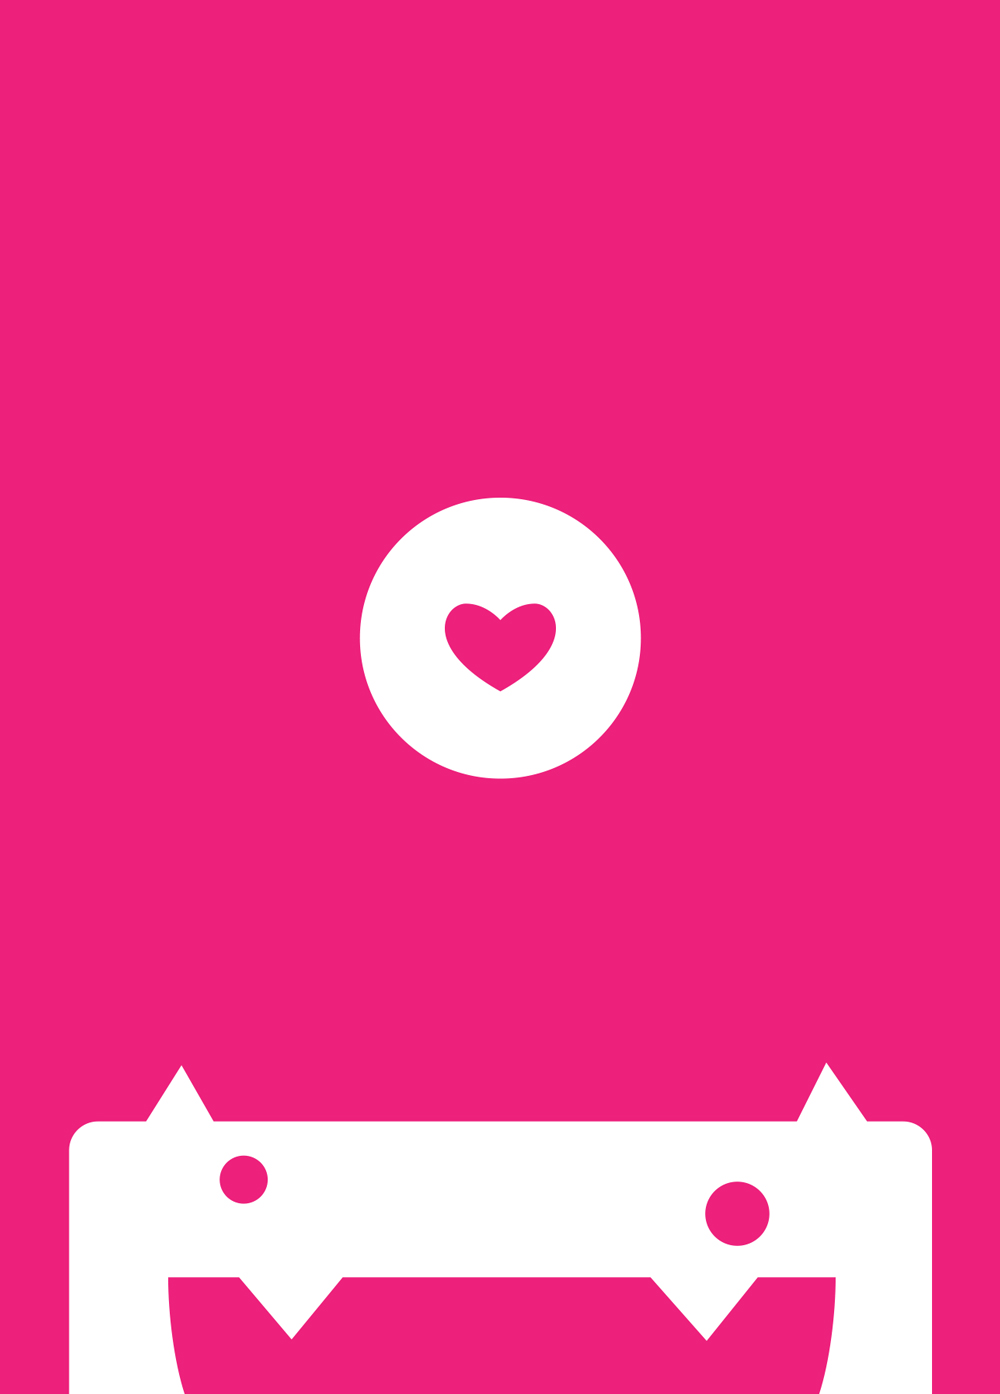 Card_Four_Heart.jpg